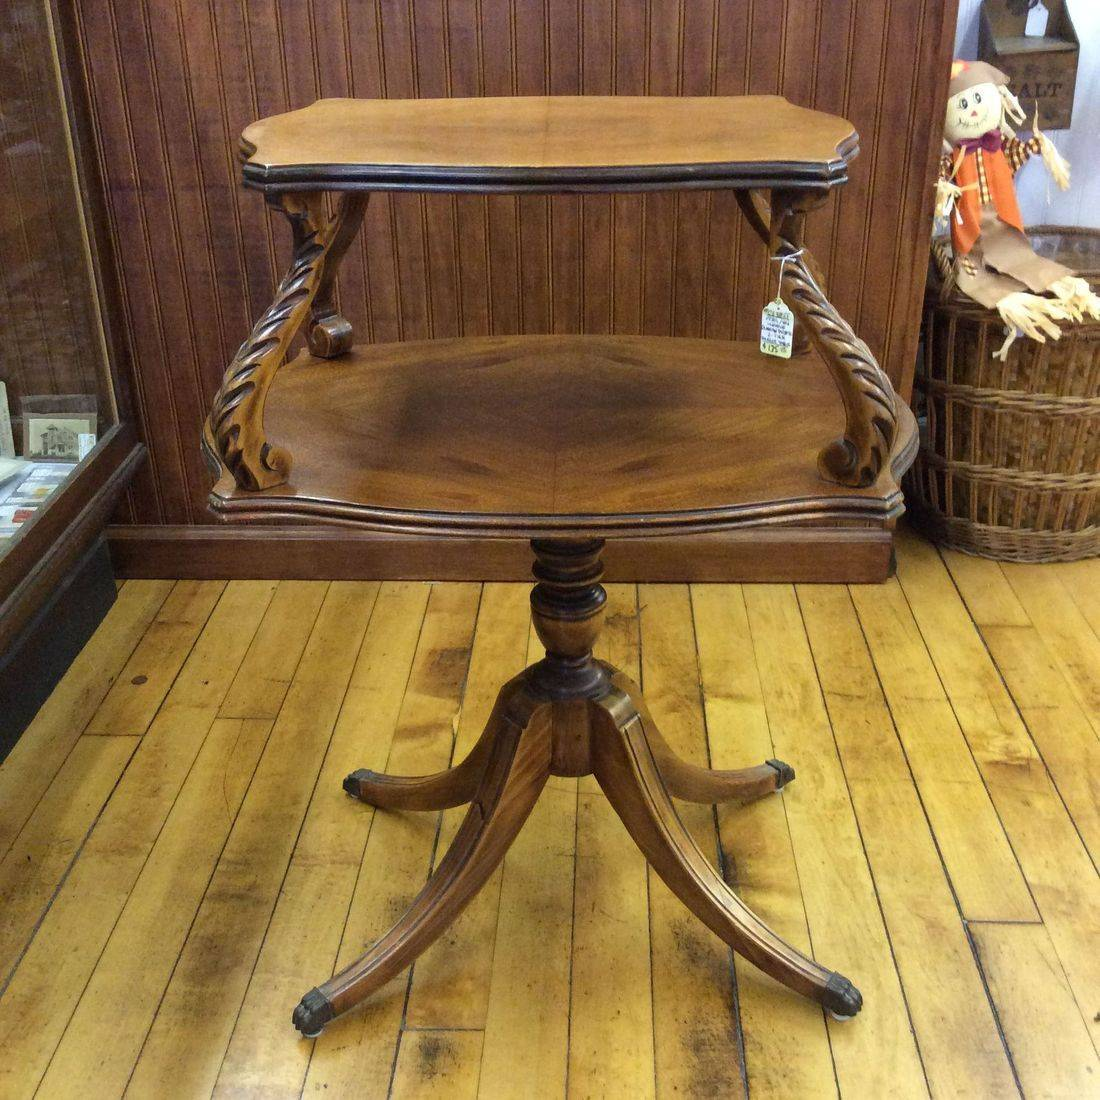 C. 1930's/40's Unique Duncan Phyfe 2-tier Parlor Table  $135.00